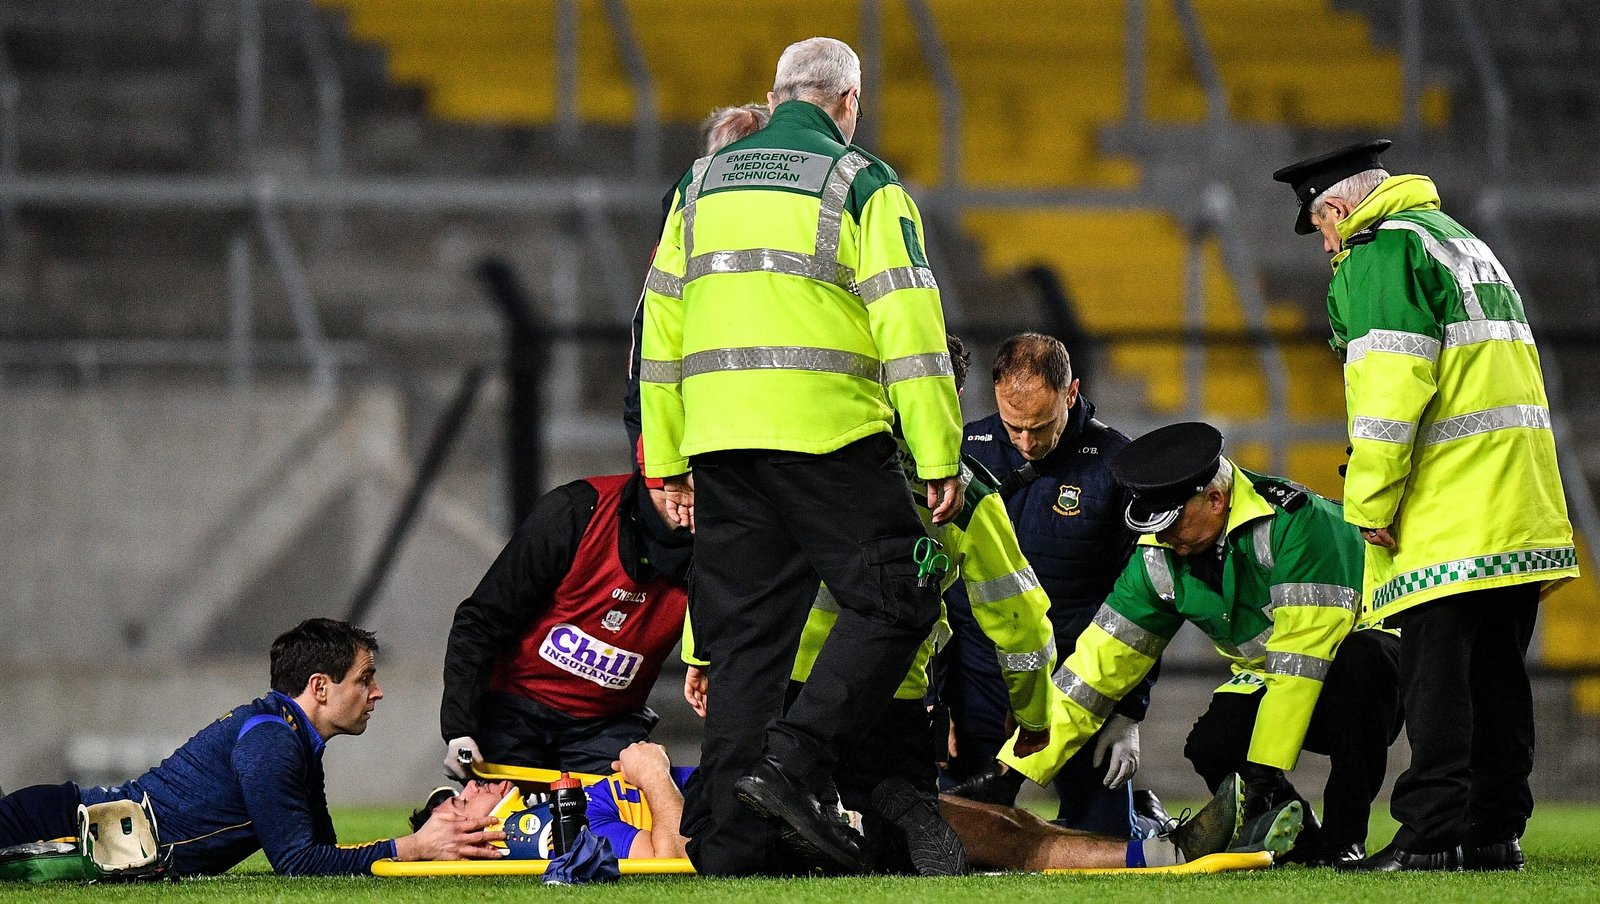 Sheedy allays fears over severity of ODwyer injury